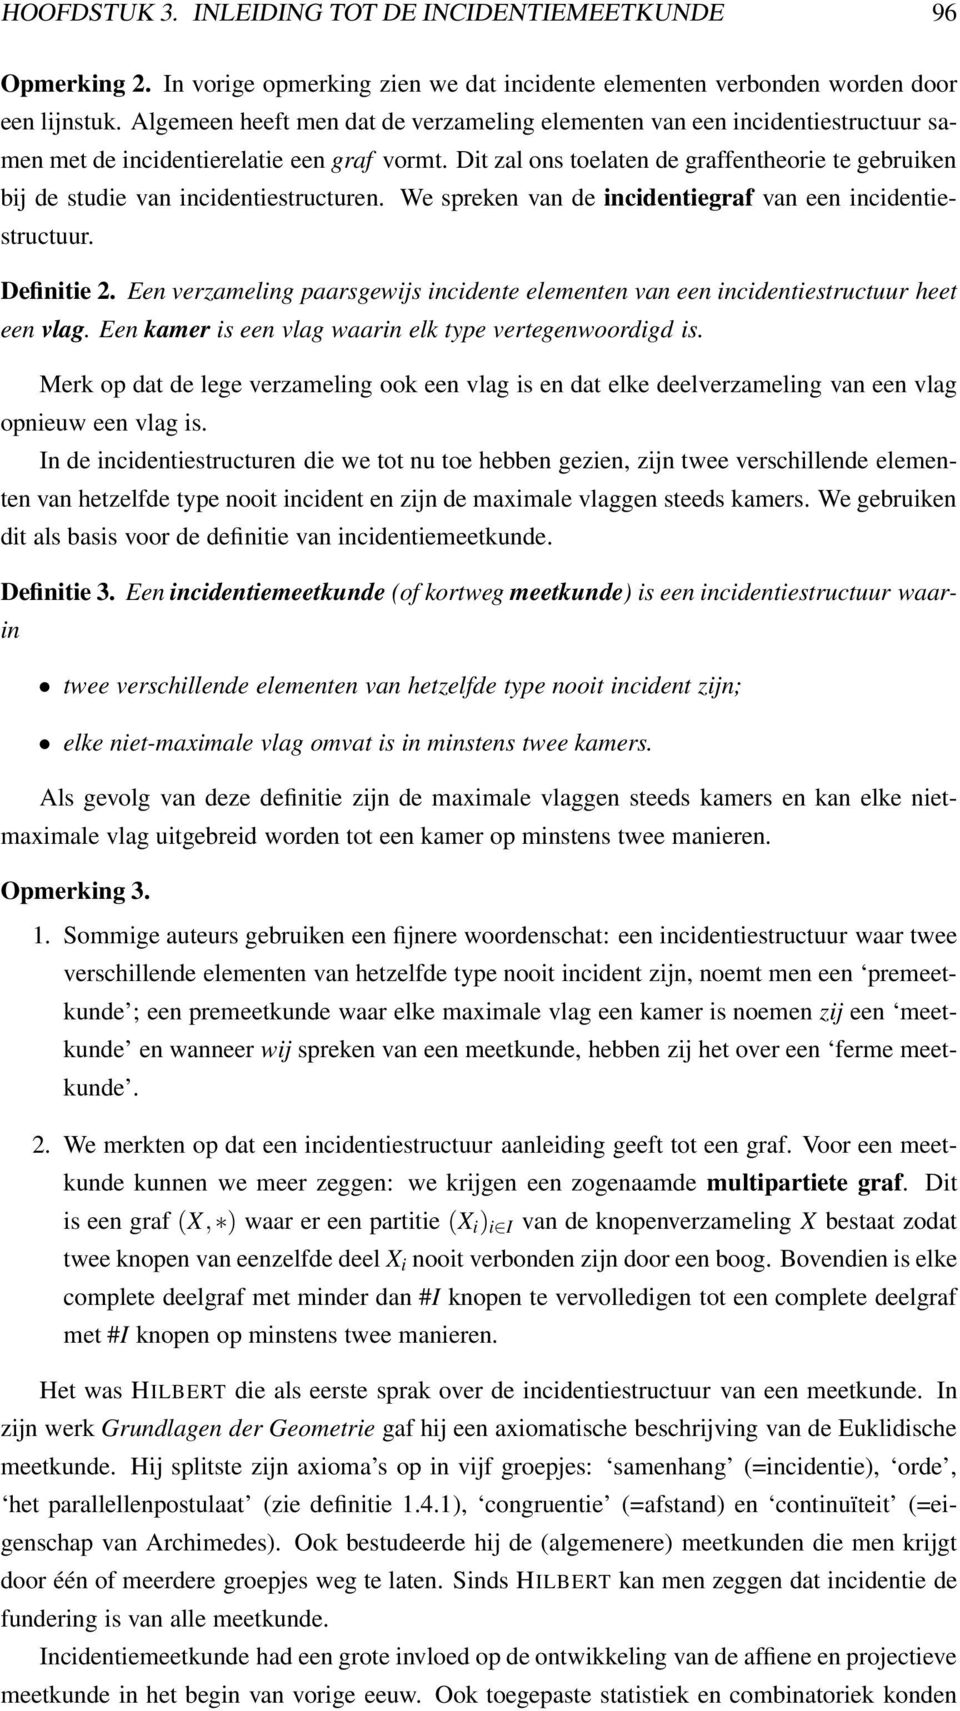 Dit zal ons toelaten de graffentheorie te gebruiken bij de studie van incidentiestructuren. We spreken van de incidentiegraf van een incidentiestructuur. Definitie 2.